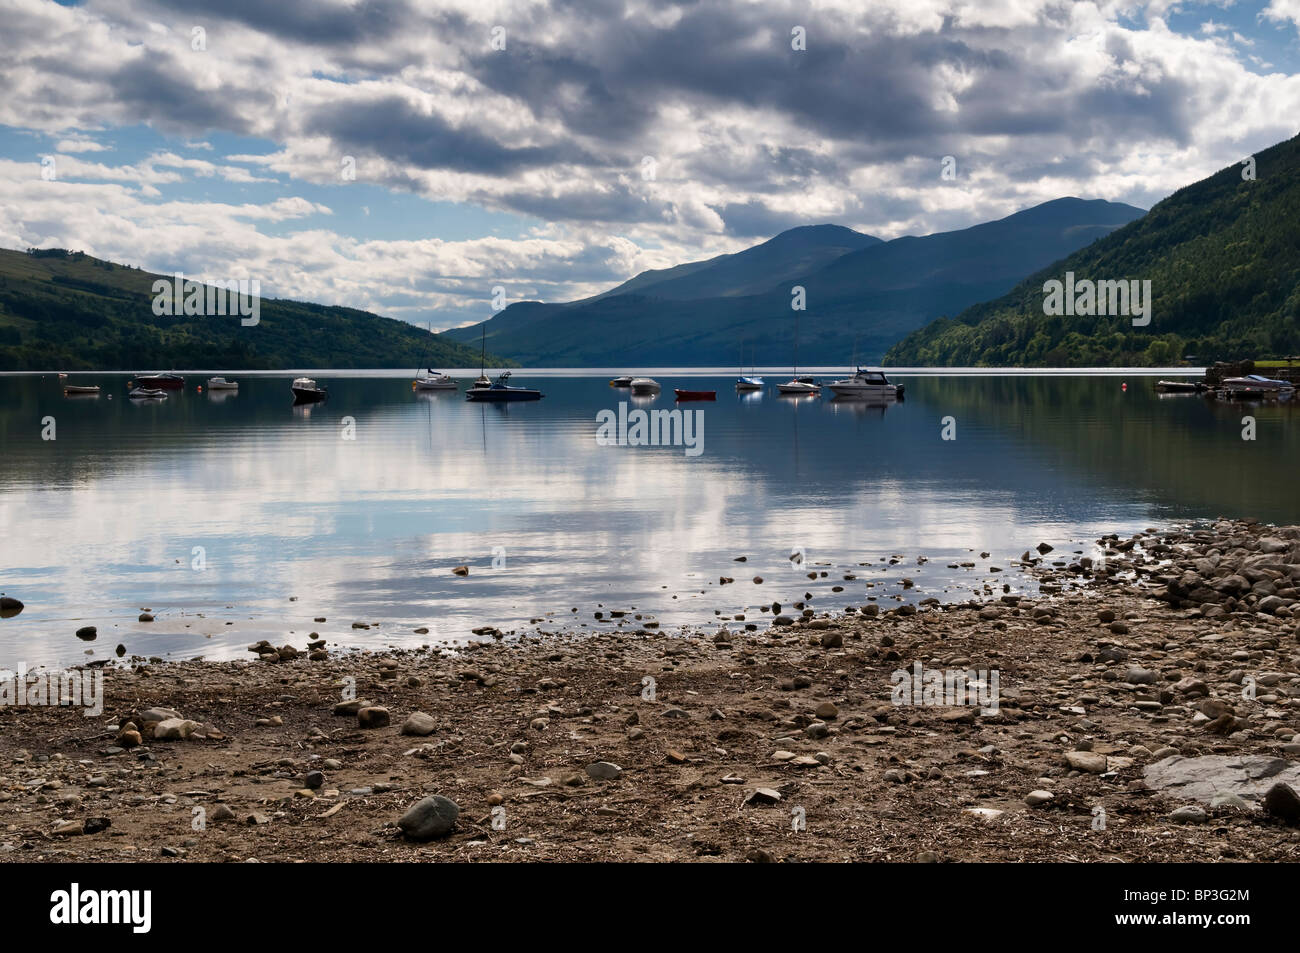 Boats on Loch Tay, Tayside, Scotland with Ben Lawers mountain in the background taken at Kenmore - Stock Image